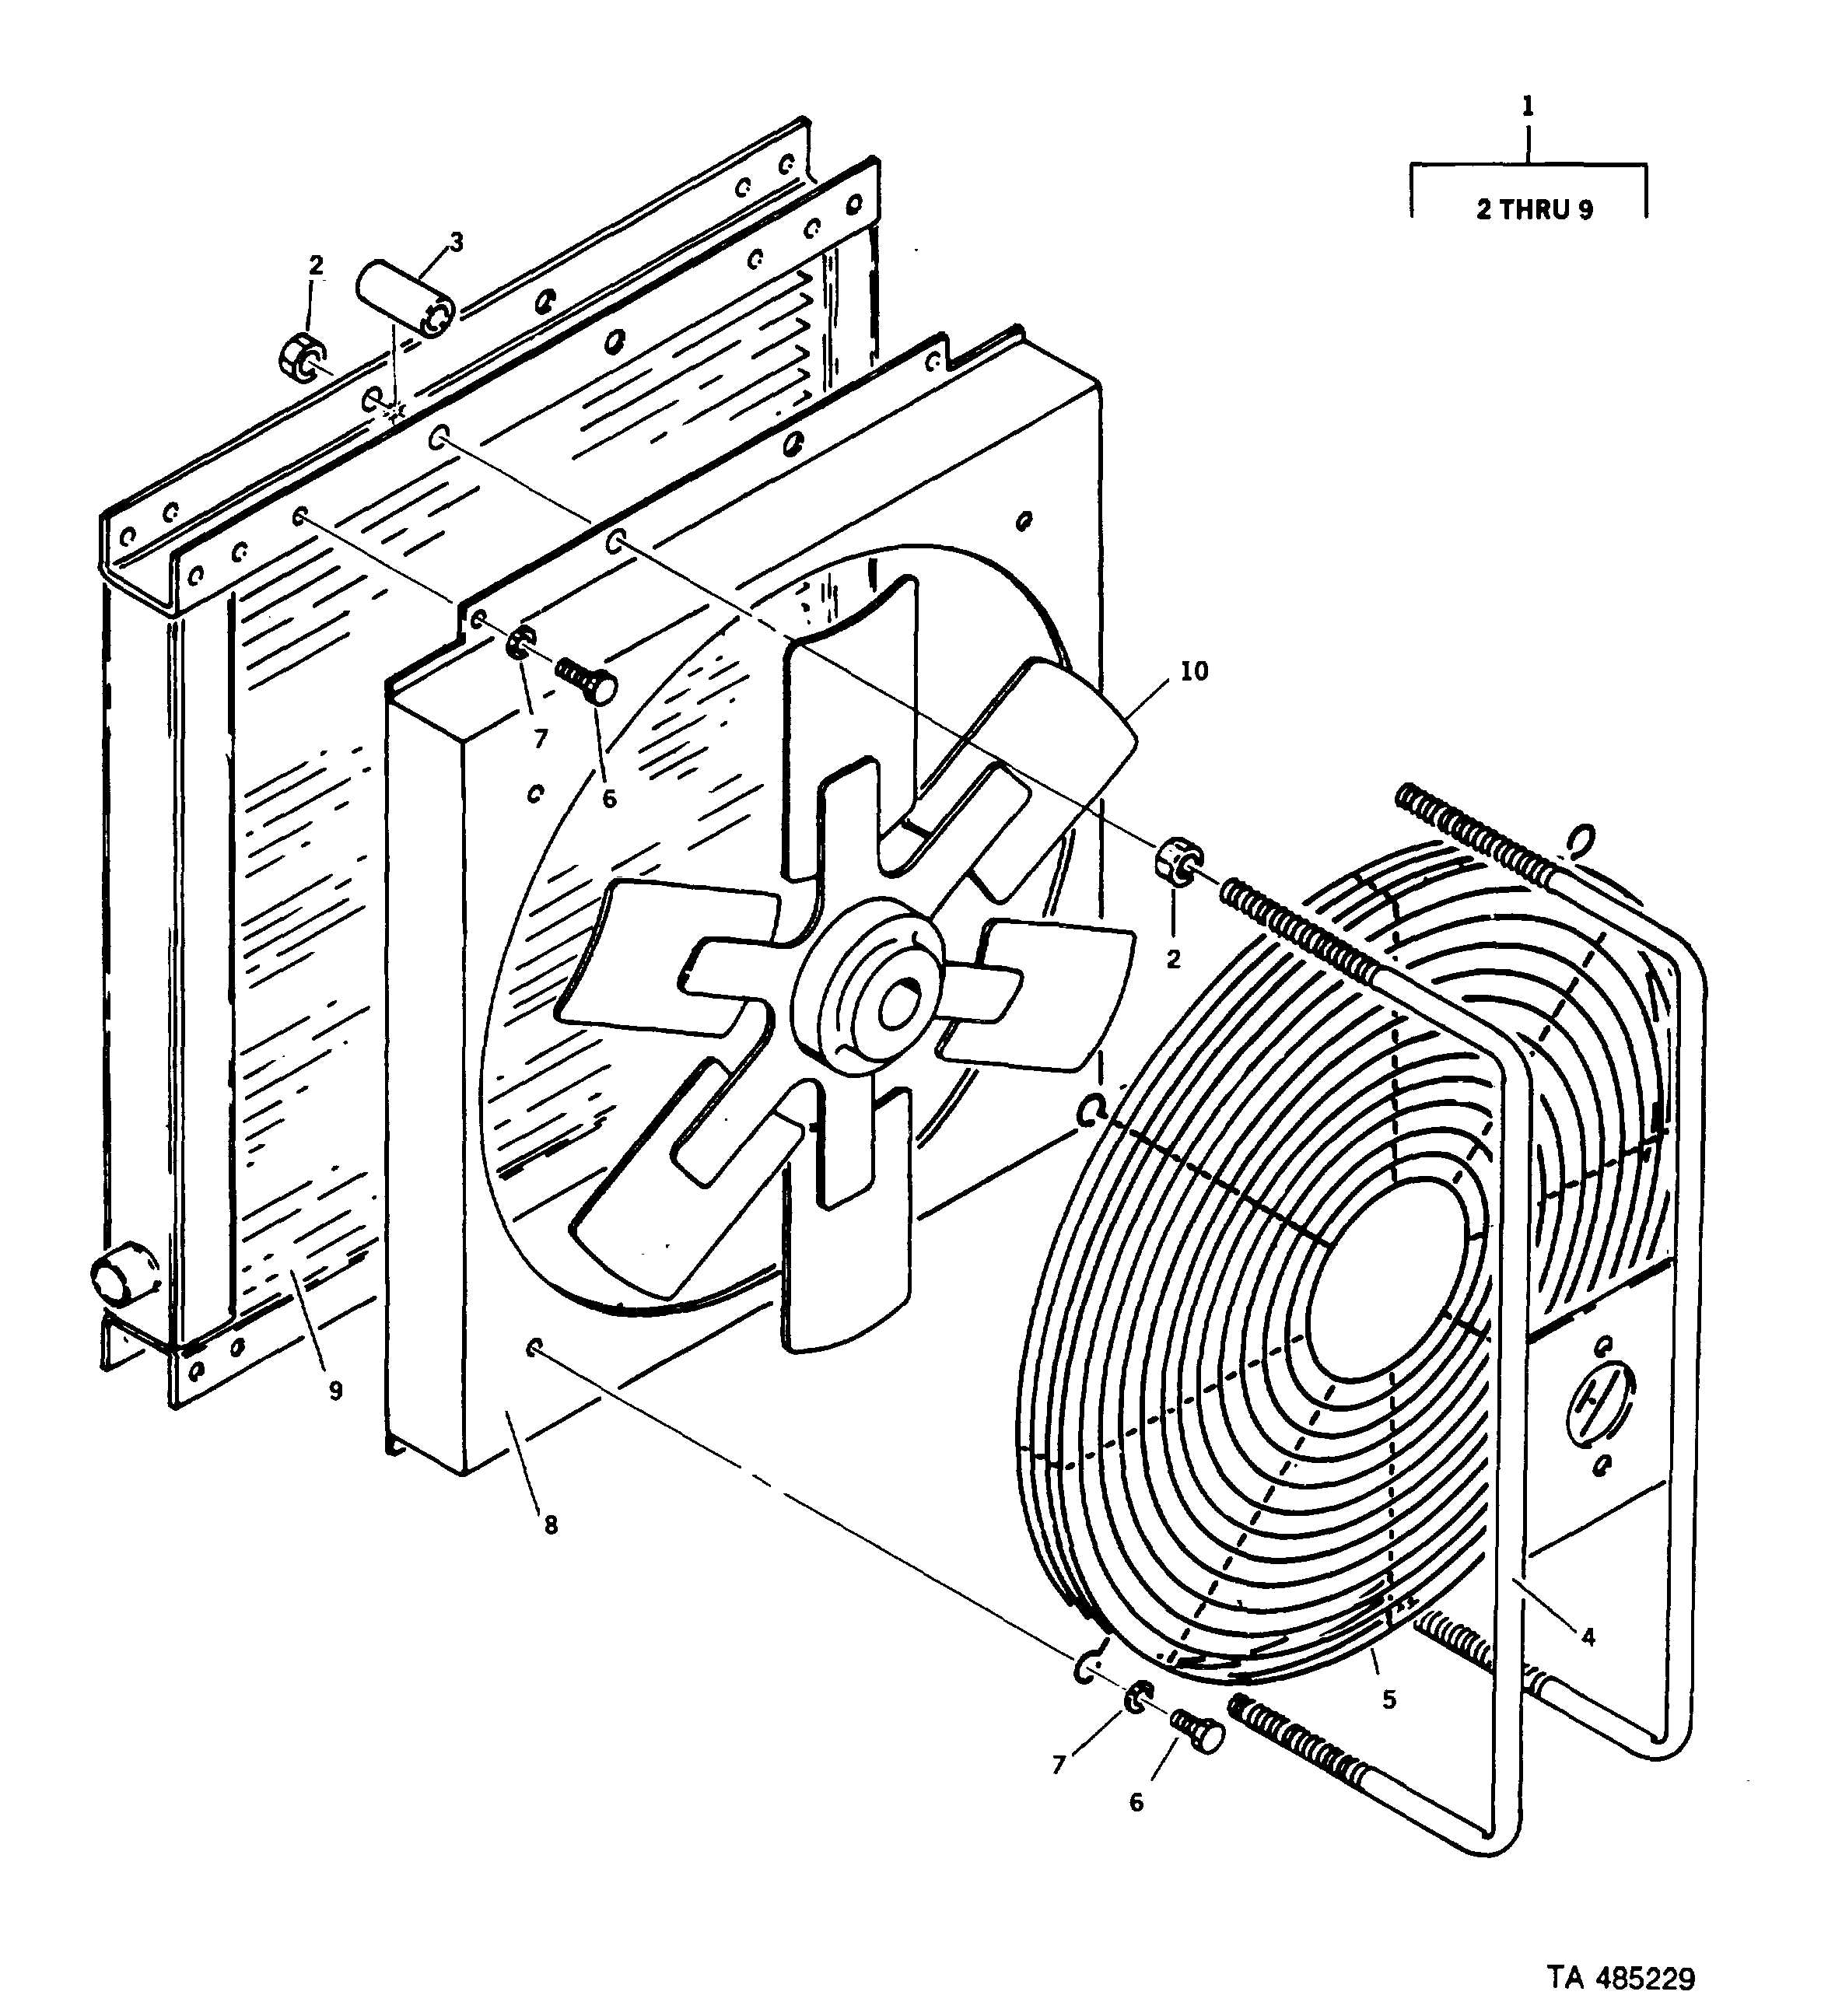 Figure 169. Hydraulic Oil /Cooler Assembly